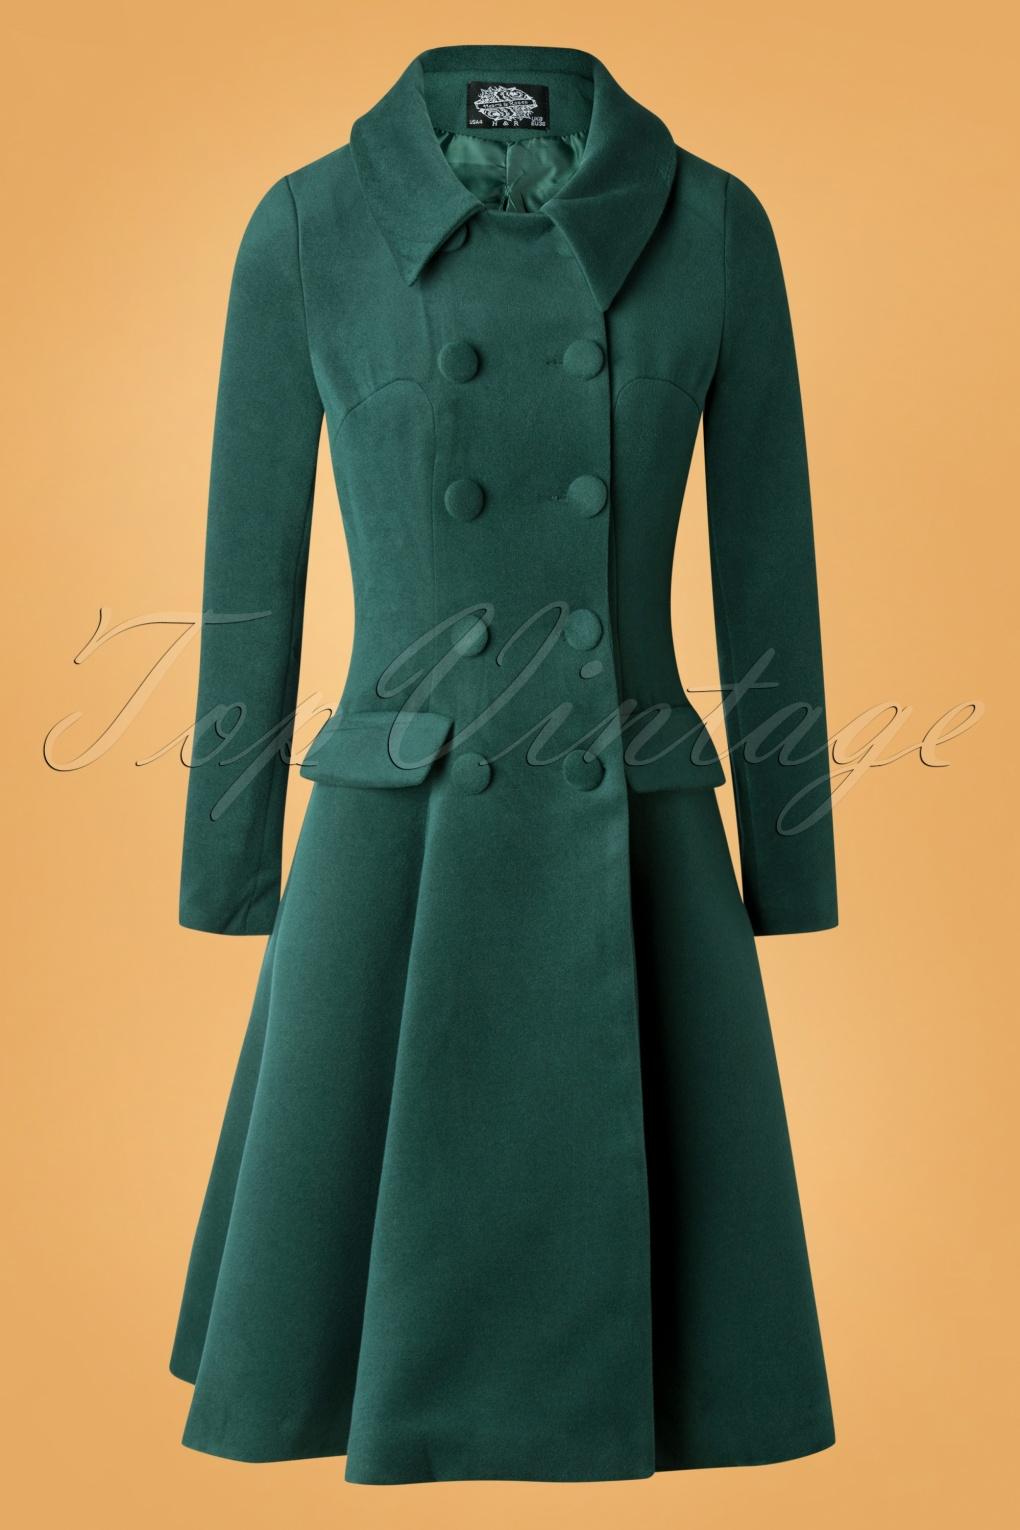 Vintage Coats & Jackets | Retro Coats and Jackets 50s Evelyn Swing Coat in Green £97.90 AT vintagedancer.com